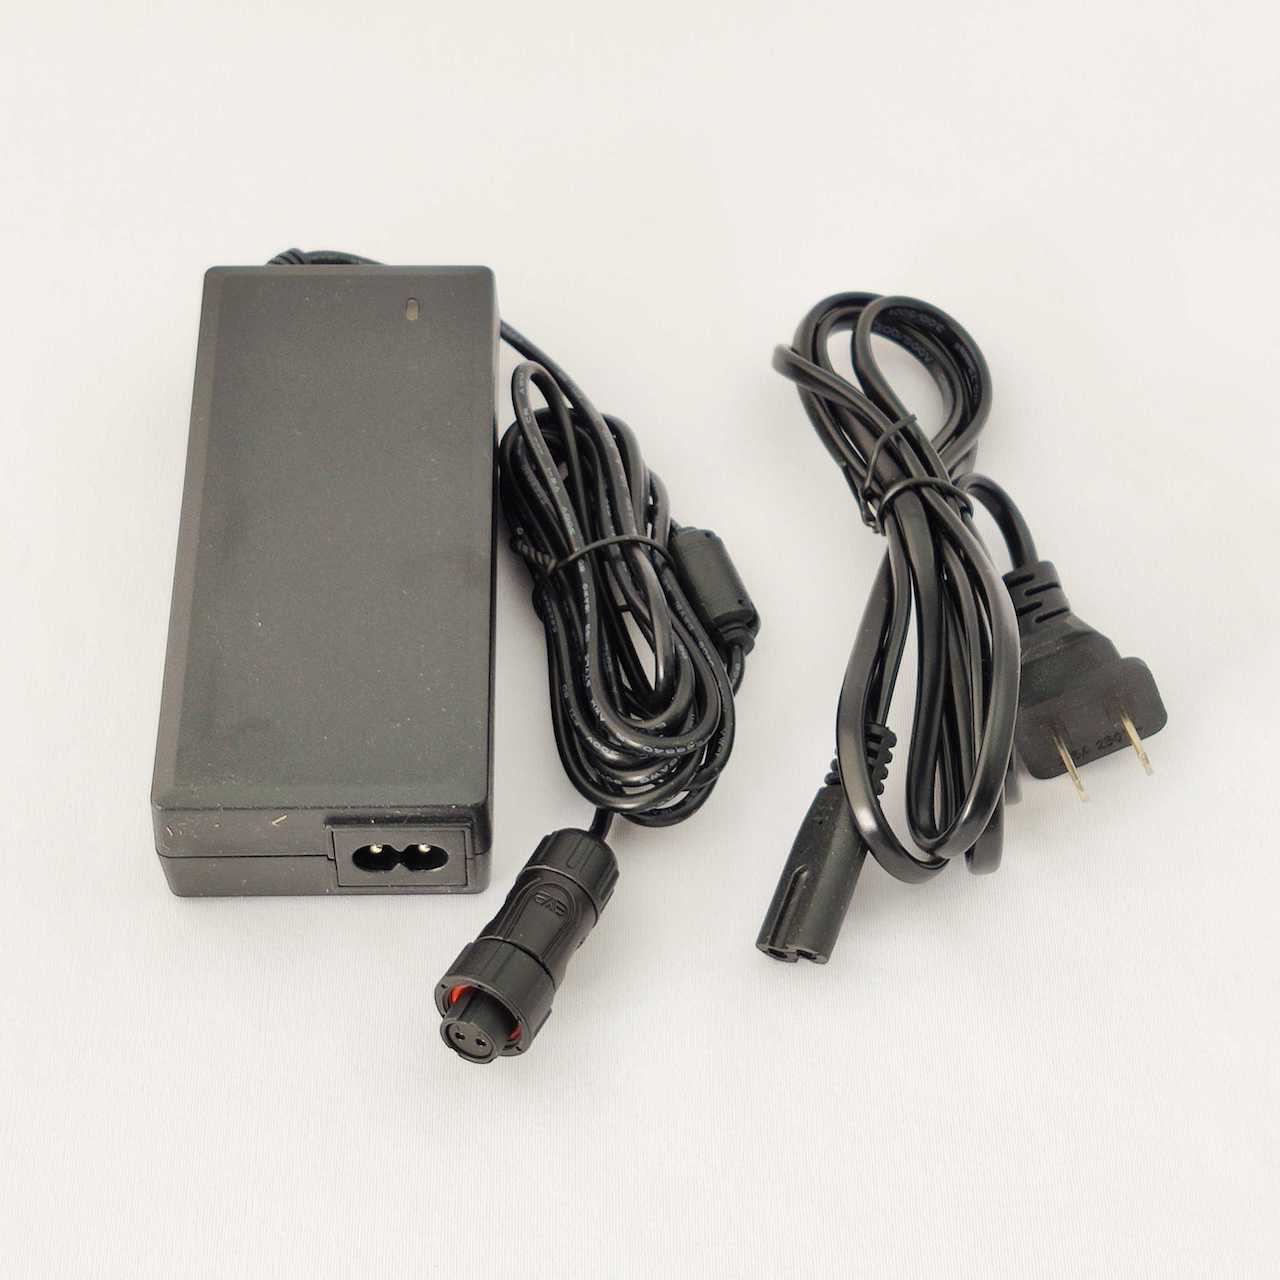 AC400M 12V 6A adapter with 2 pin plug